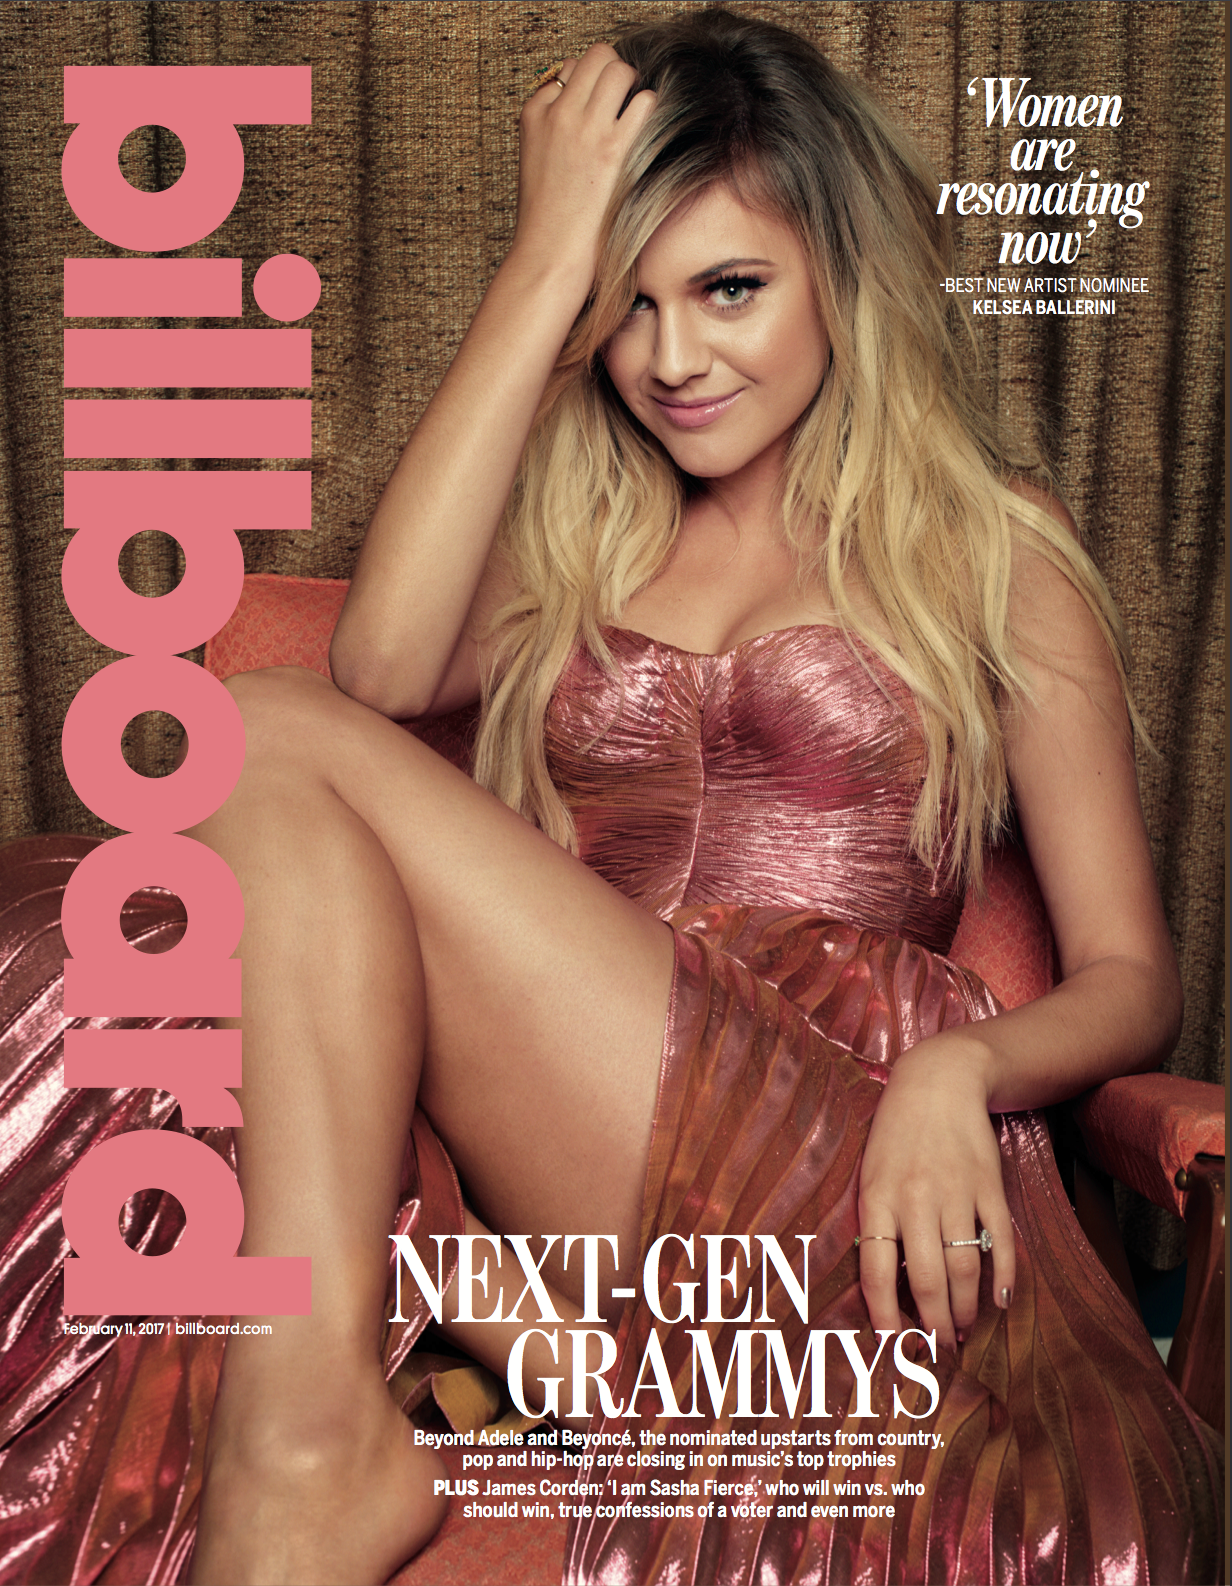 Kelsea Ballerini, Billboard Cover Shoot, Feb. 2017